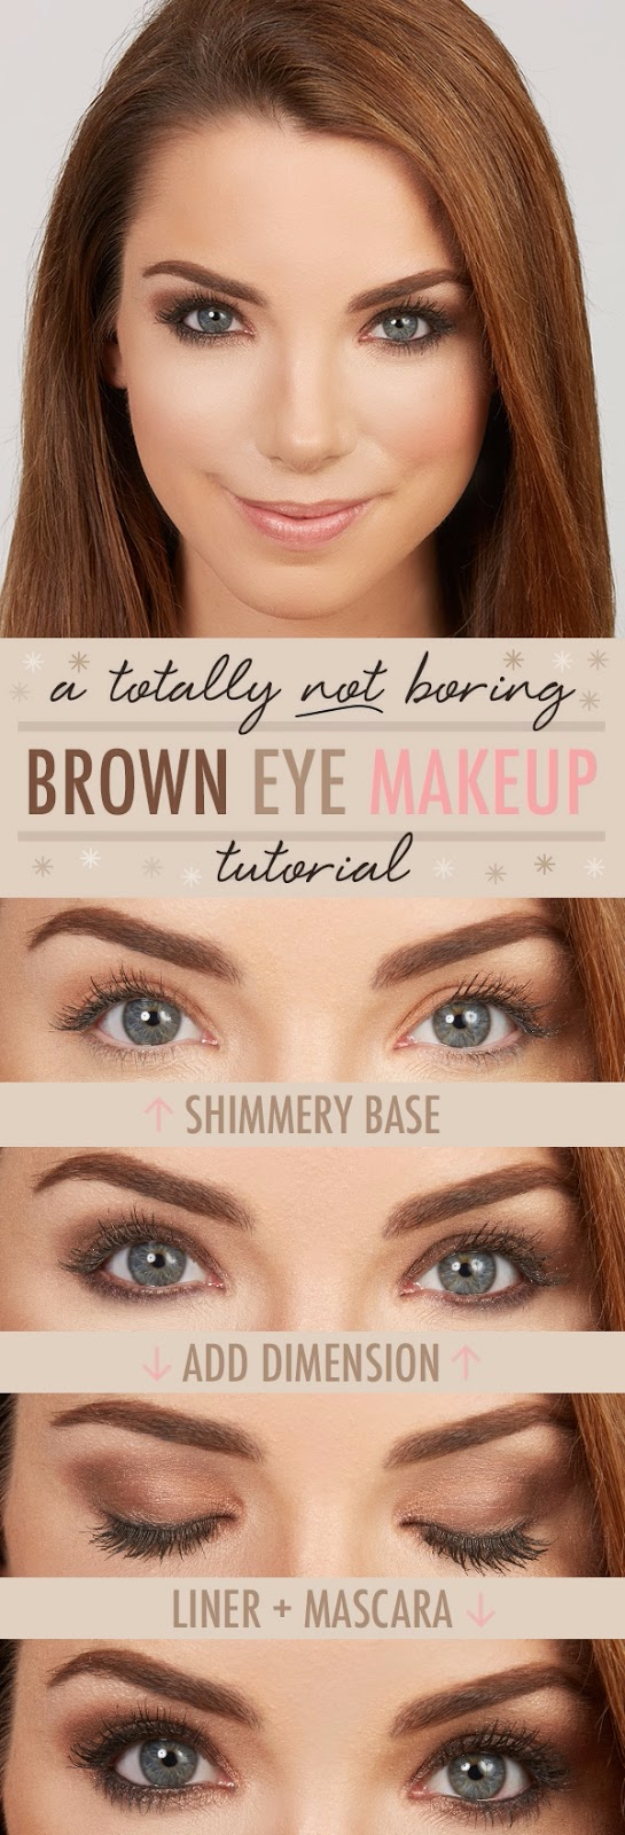 Cool DIY Makeup Hacks for Quick and Easy Beauty Ideas - Totally Not Boring Brown Eye Makeup - How To Fix Broken Makeup, Tips and Tricks for Mascara and Eye Liner, Lipstick and Foundation Tutorials - Fast Do It Yourself Beauty Projects for Women